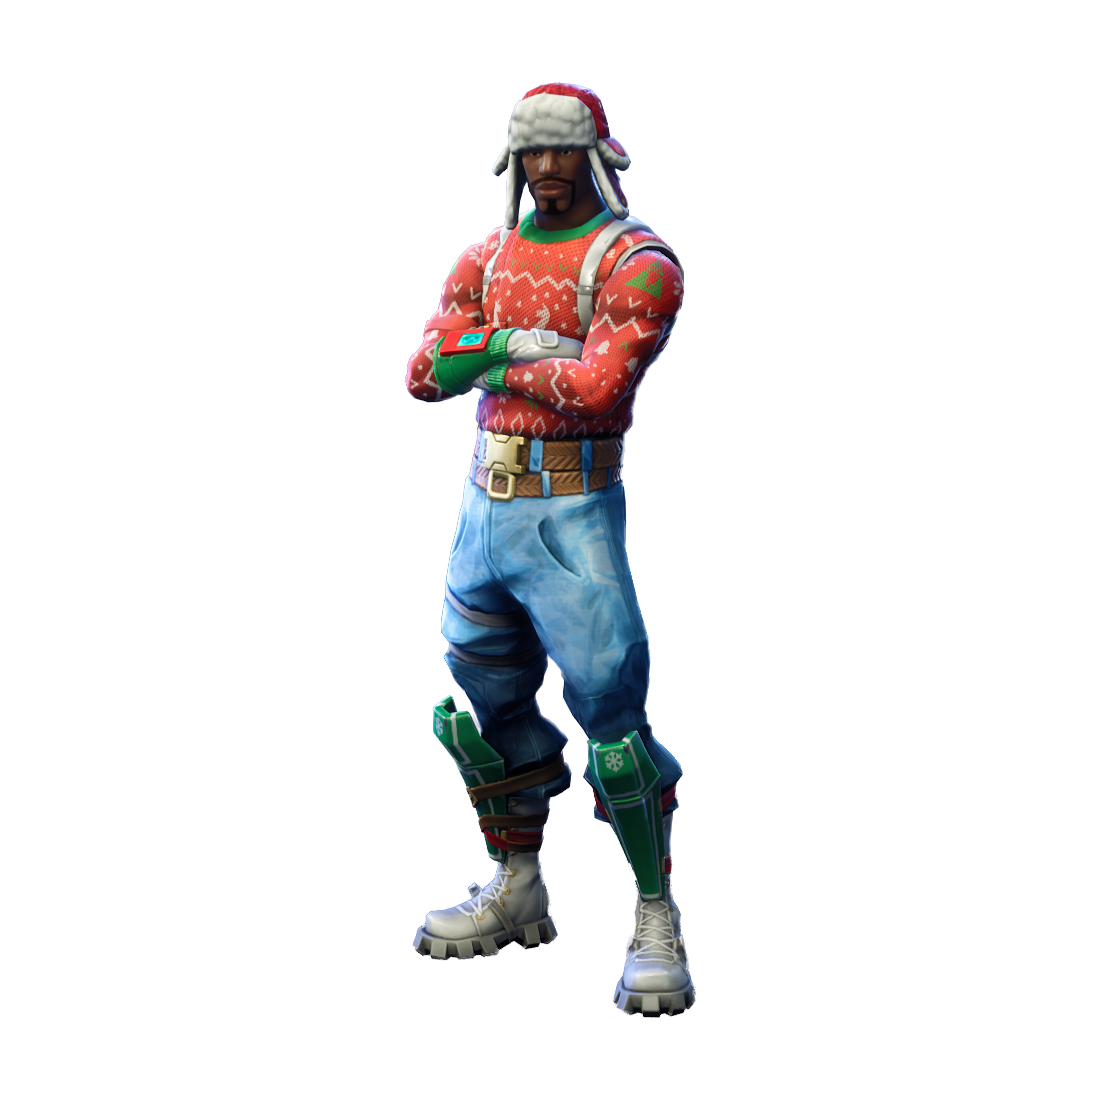 Yuletide ranger image purepng. Fortnite default dance png picture freeuse library